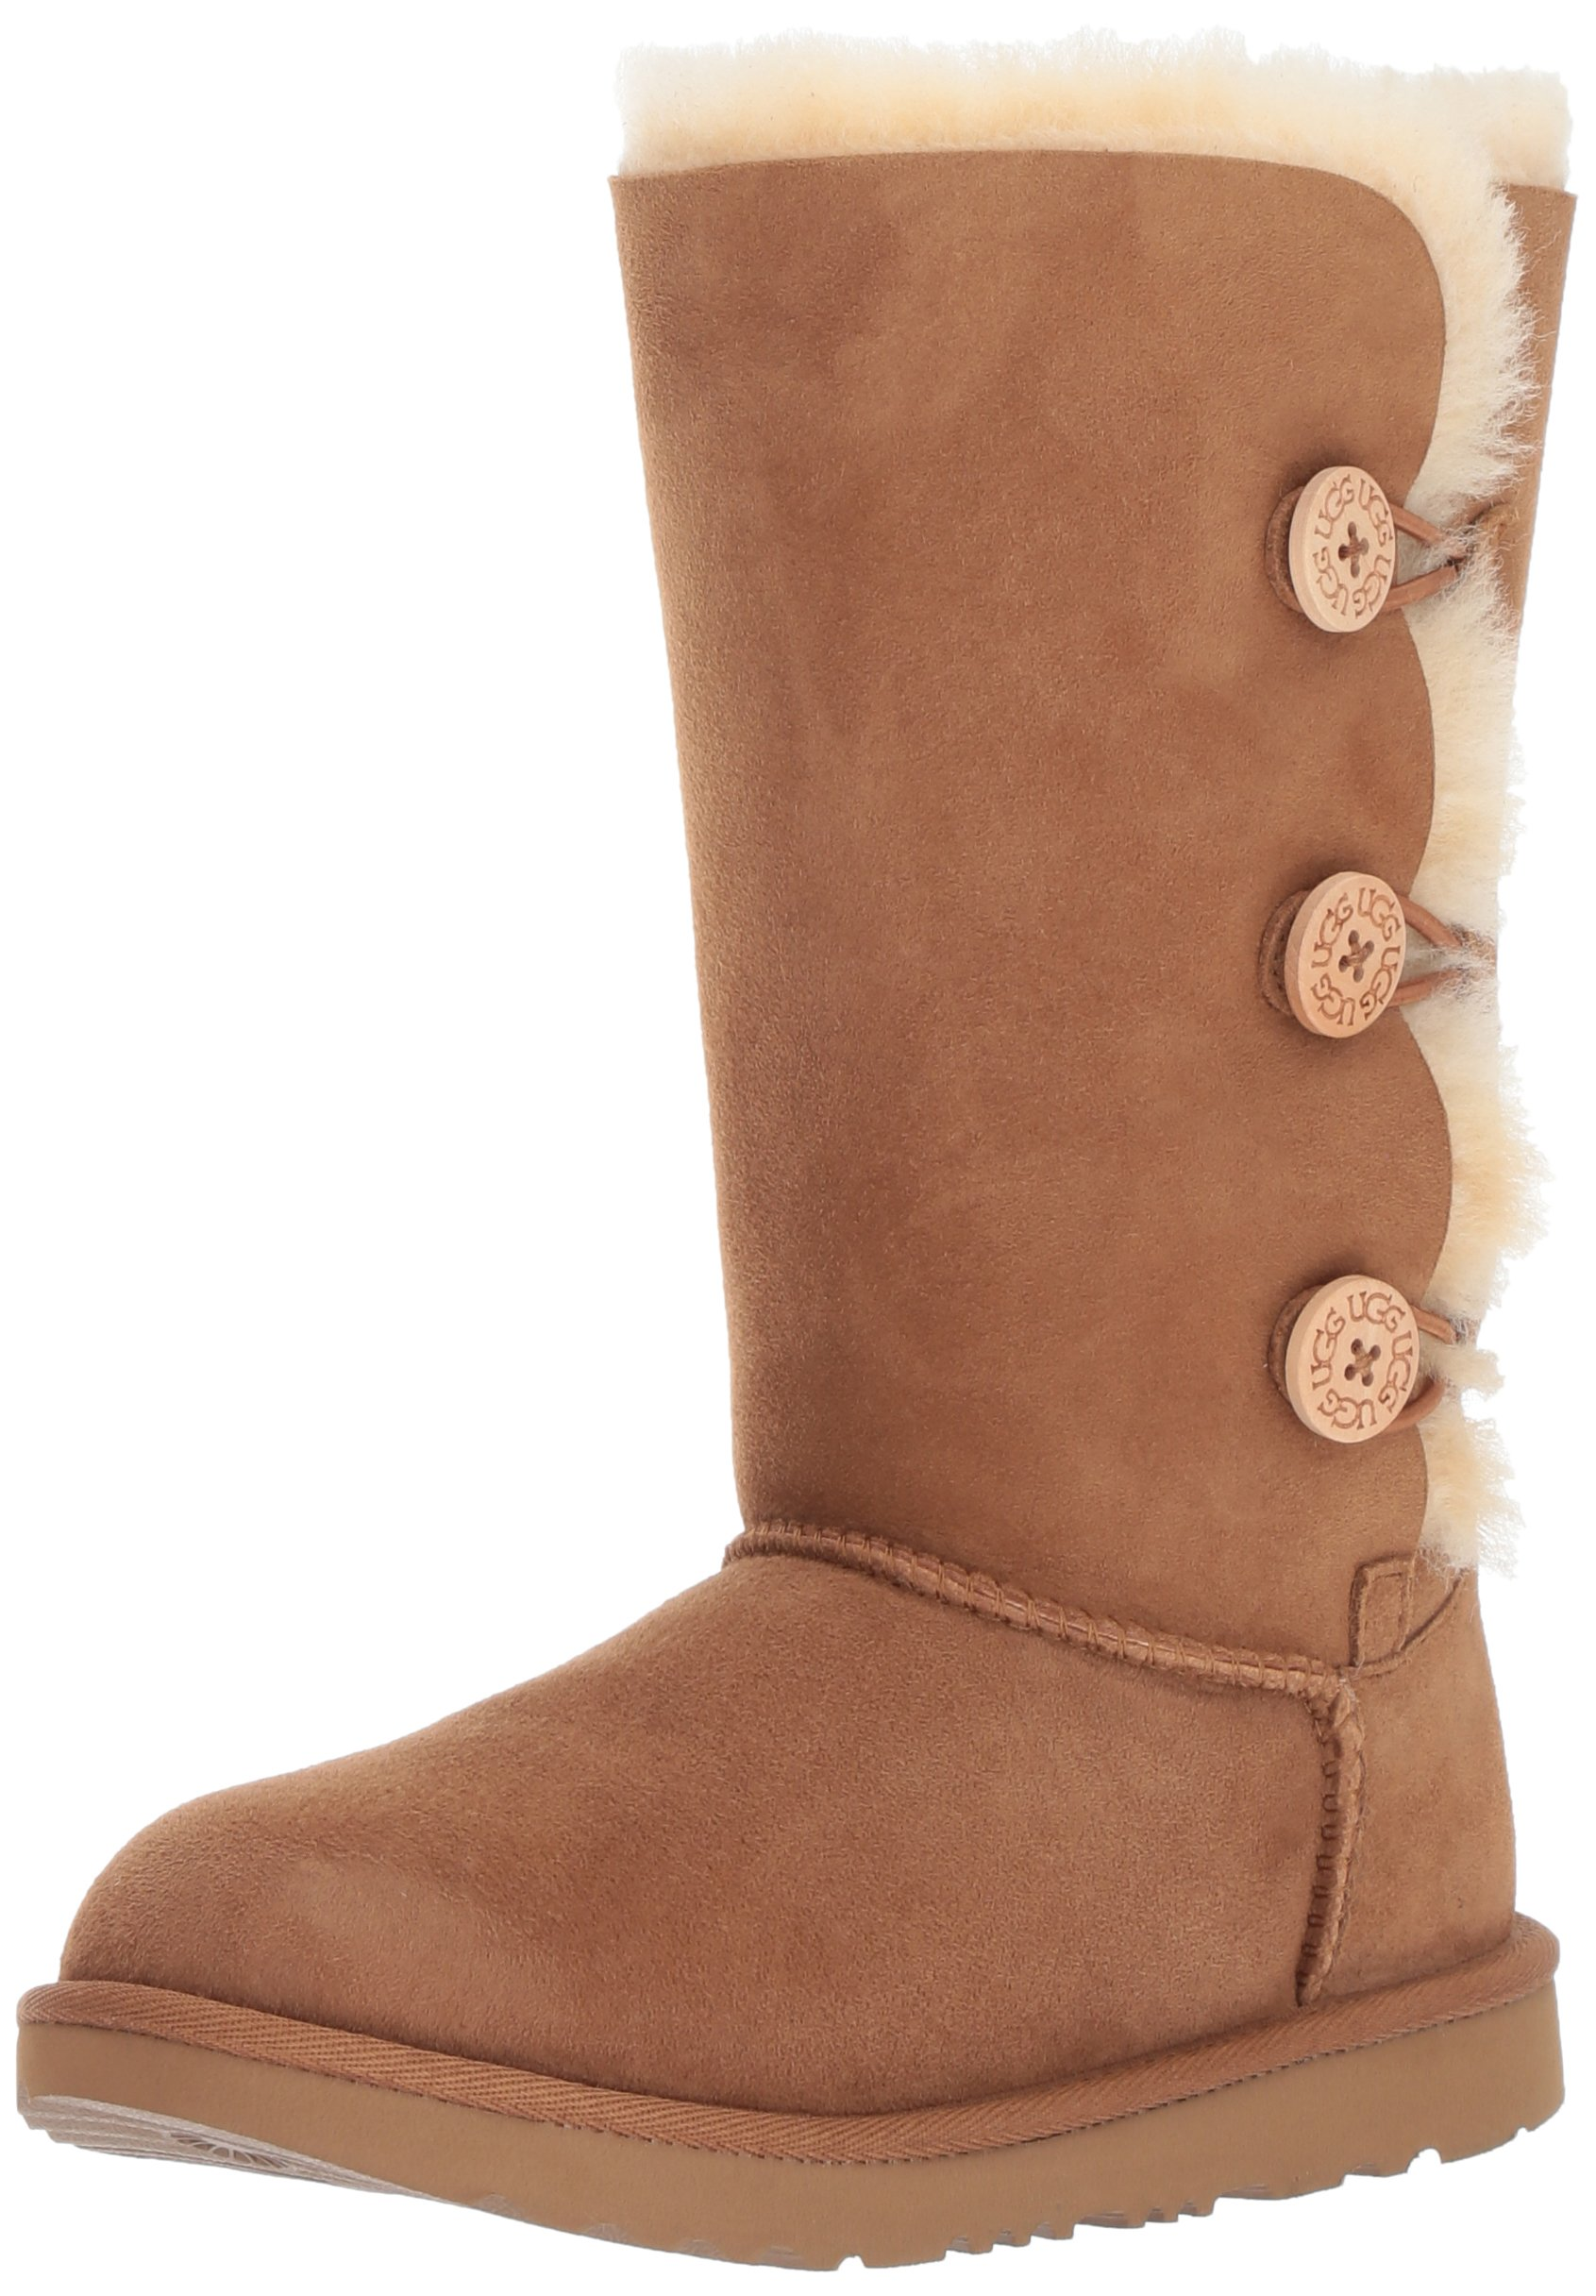 UGG Girls K Bailey Button Triplet II Pull-on Boot, Chestnut, 3 M US Little Kid